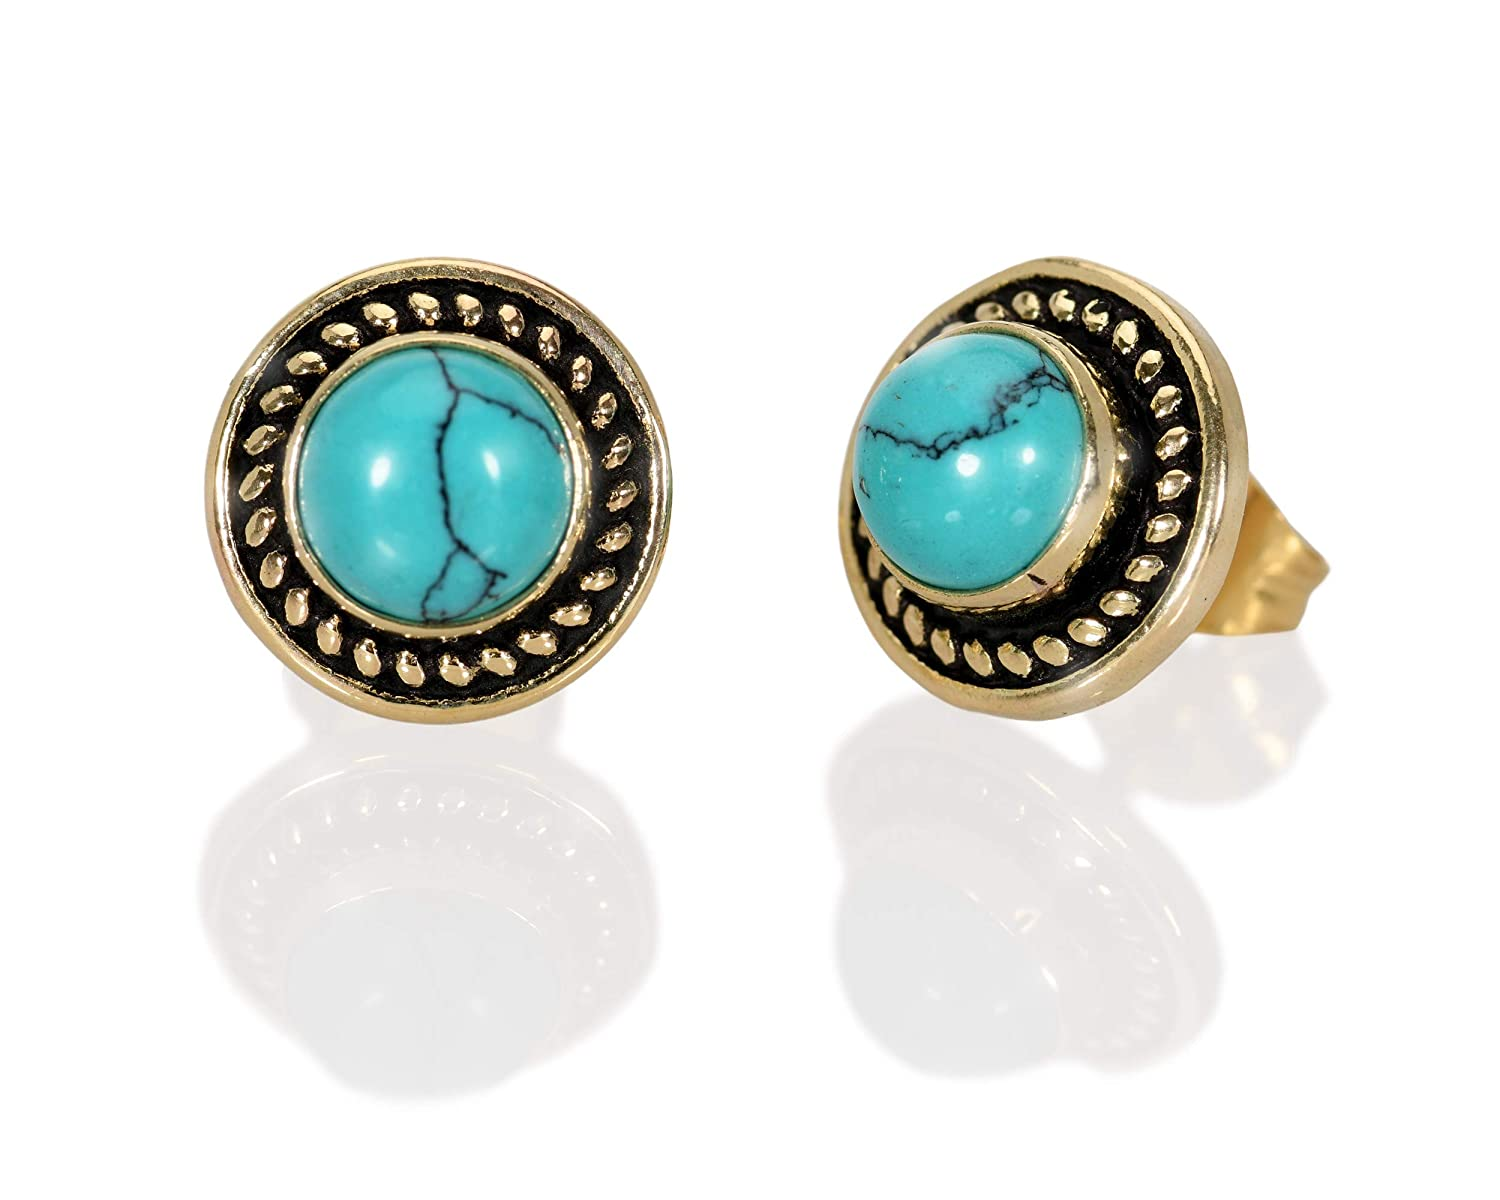 A Handcrafted Pair of Blue Turquoise Pierced Earrings!